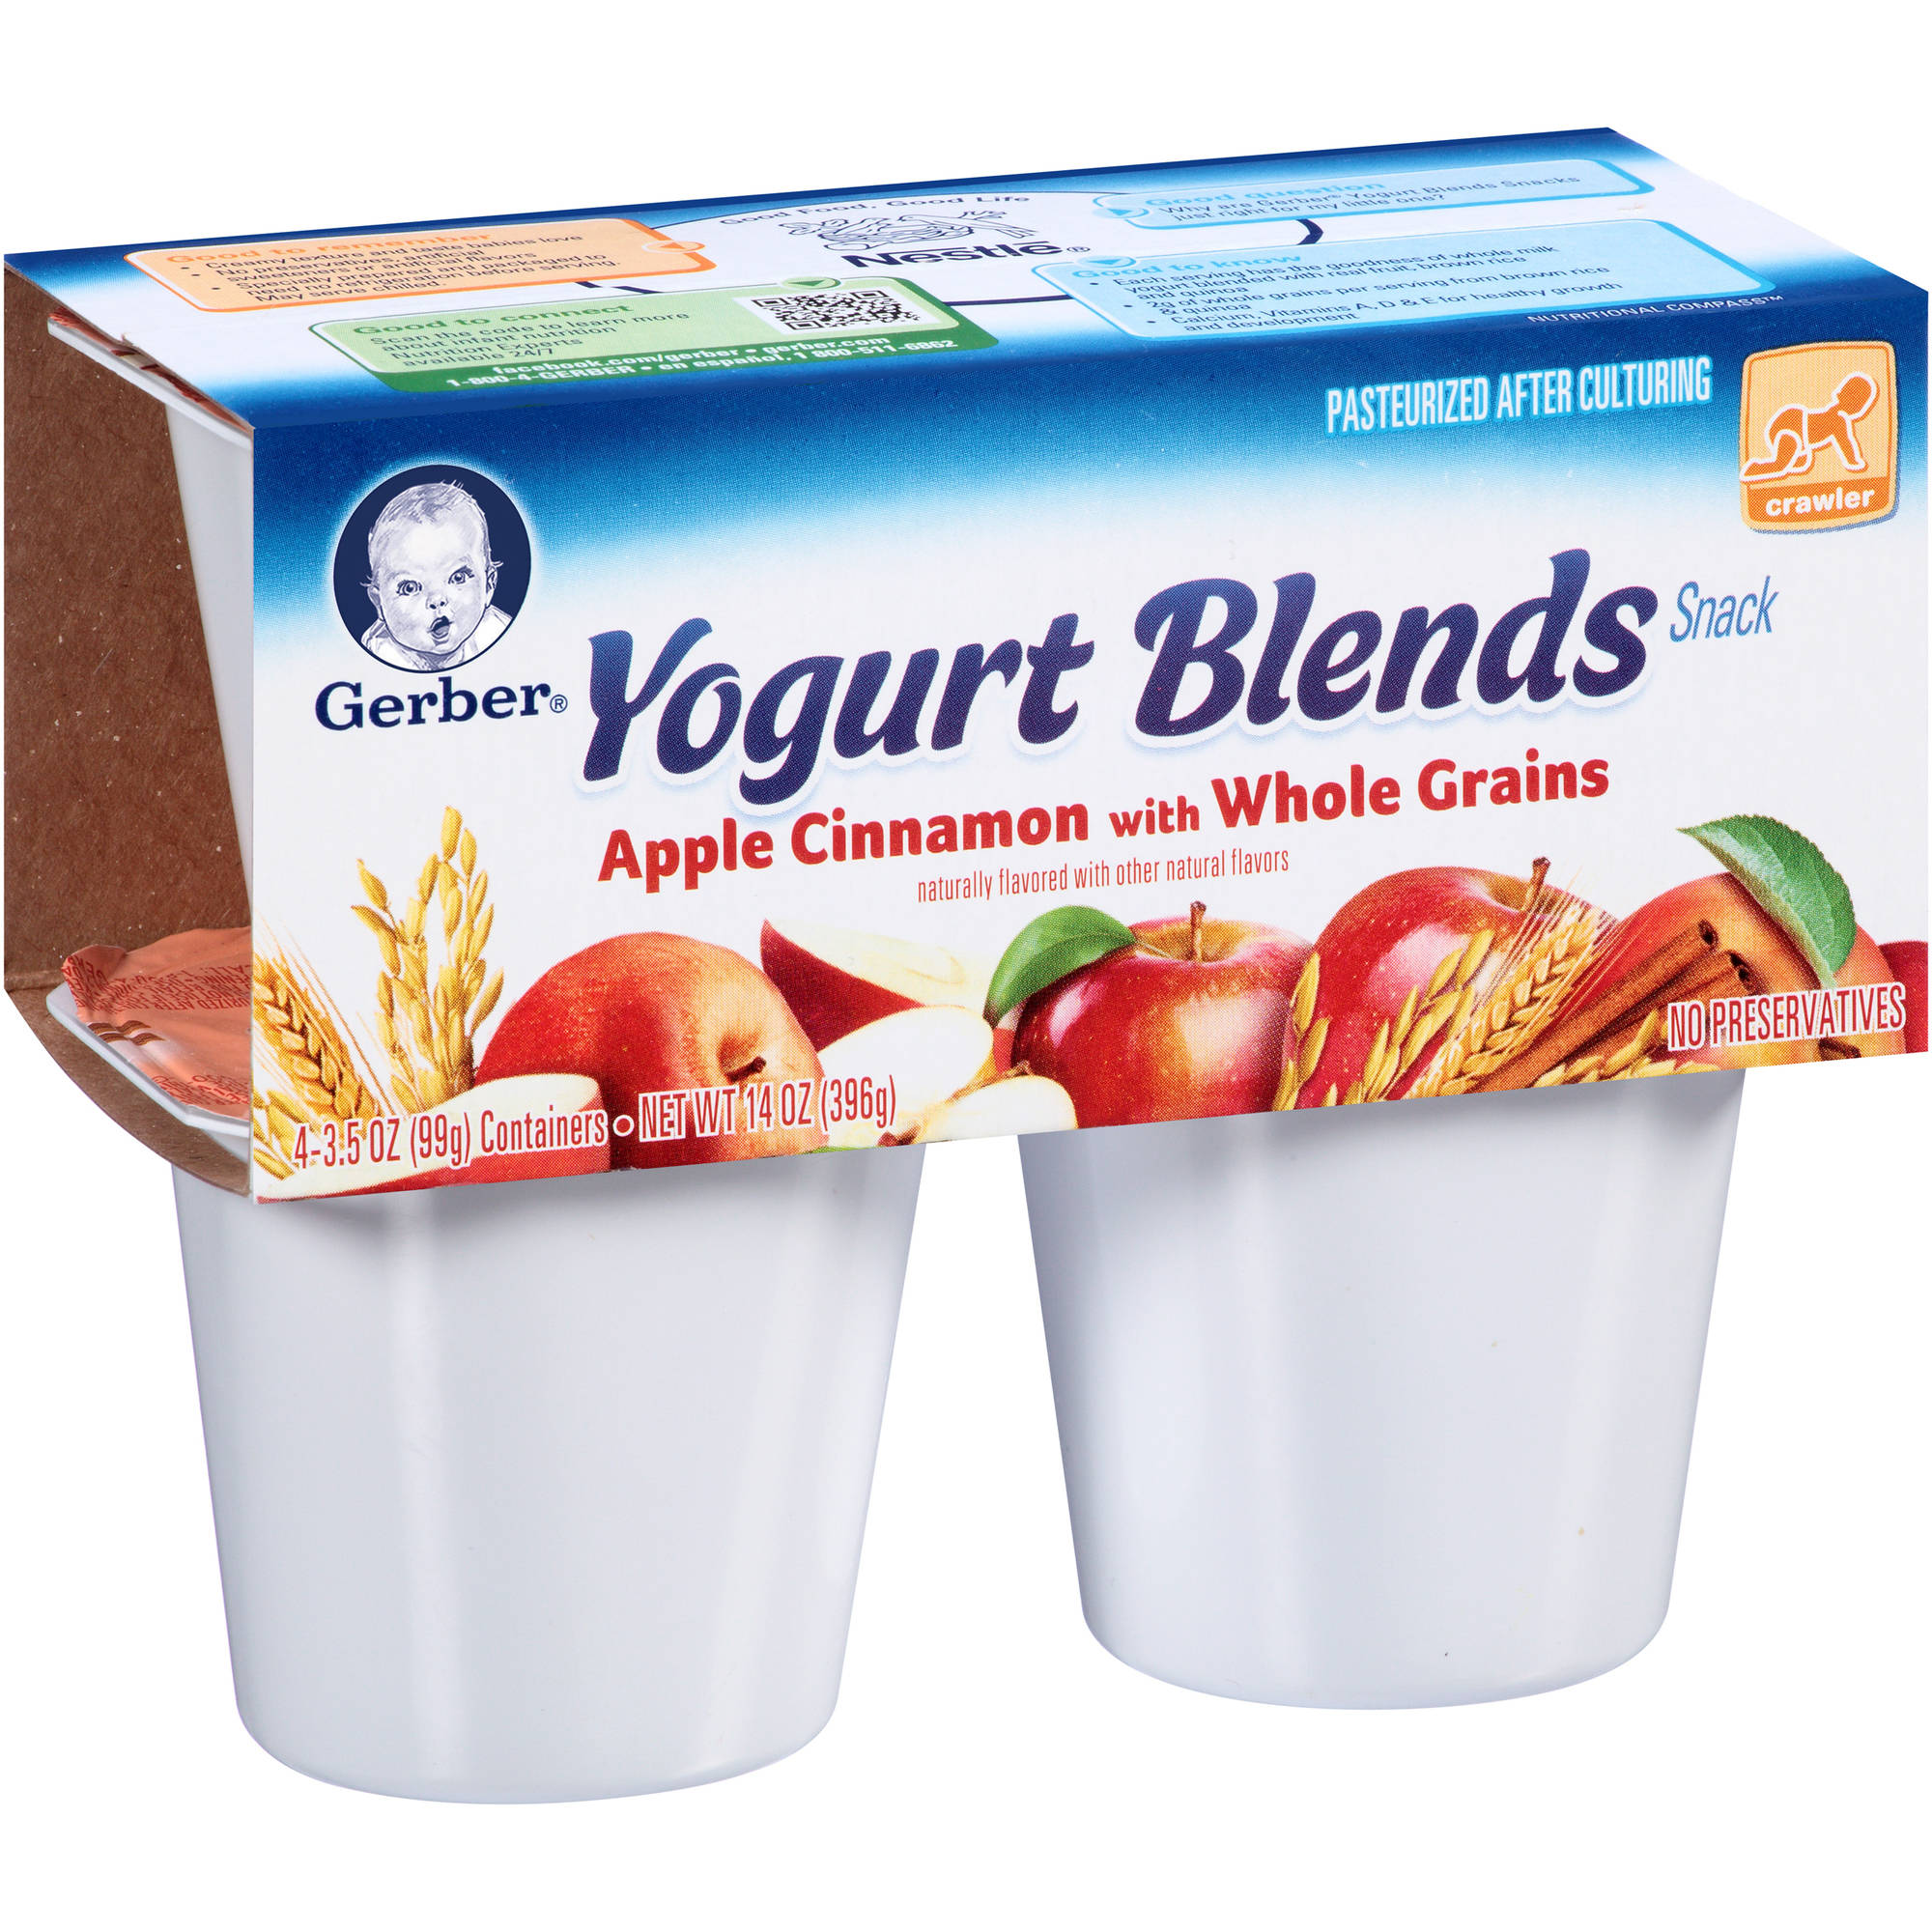 Gerber Yogurt Blends Apple Cinnamon with Whole Grains Snack, 3.5 oz, 4 count